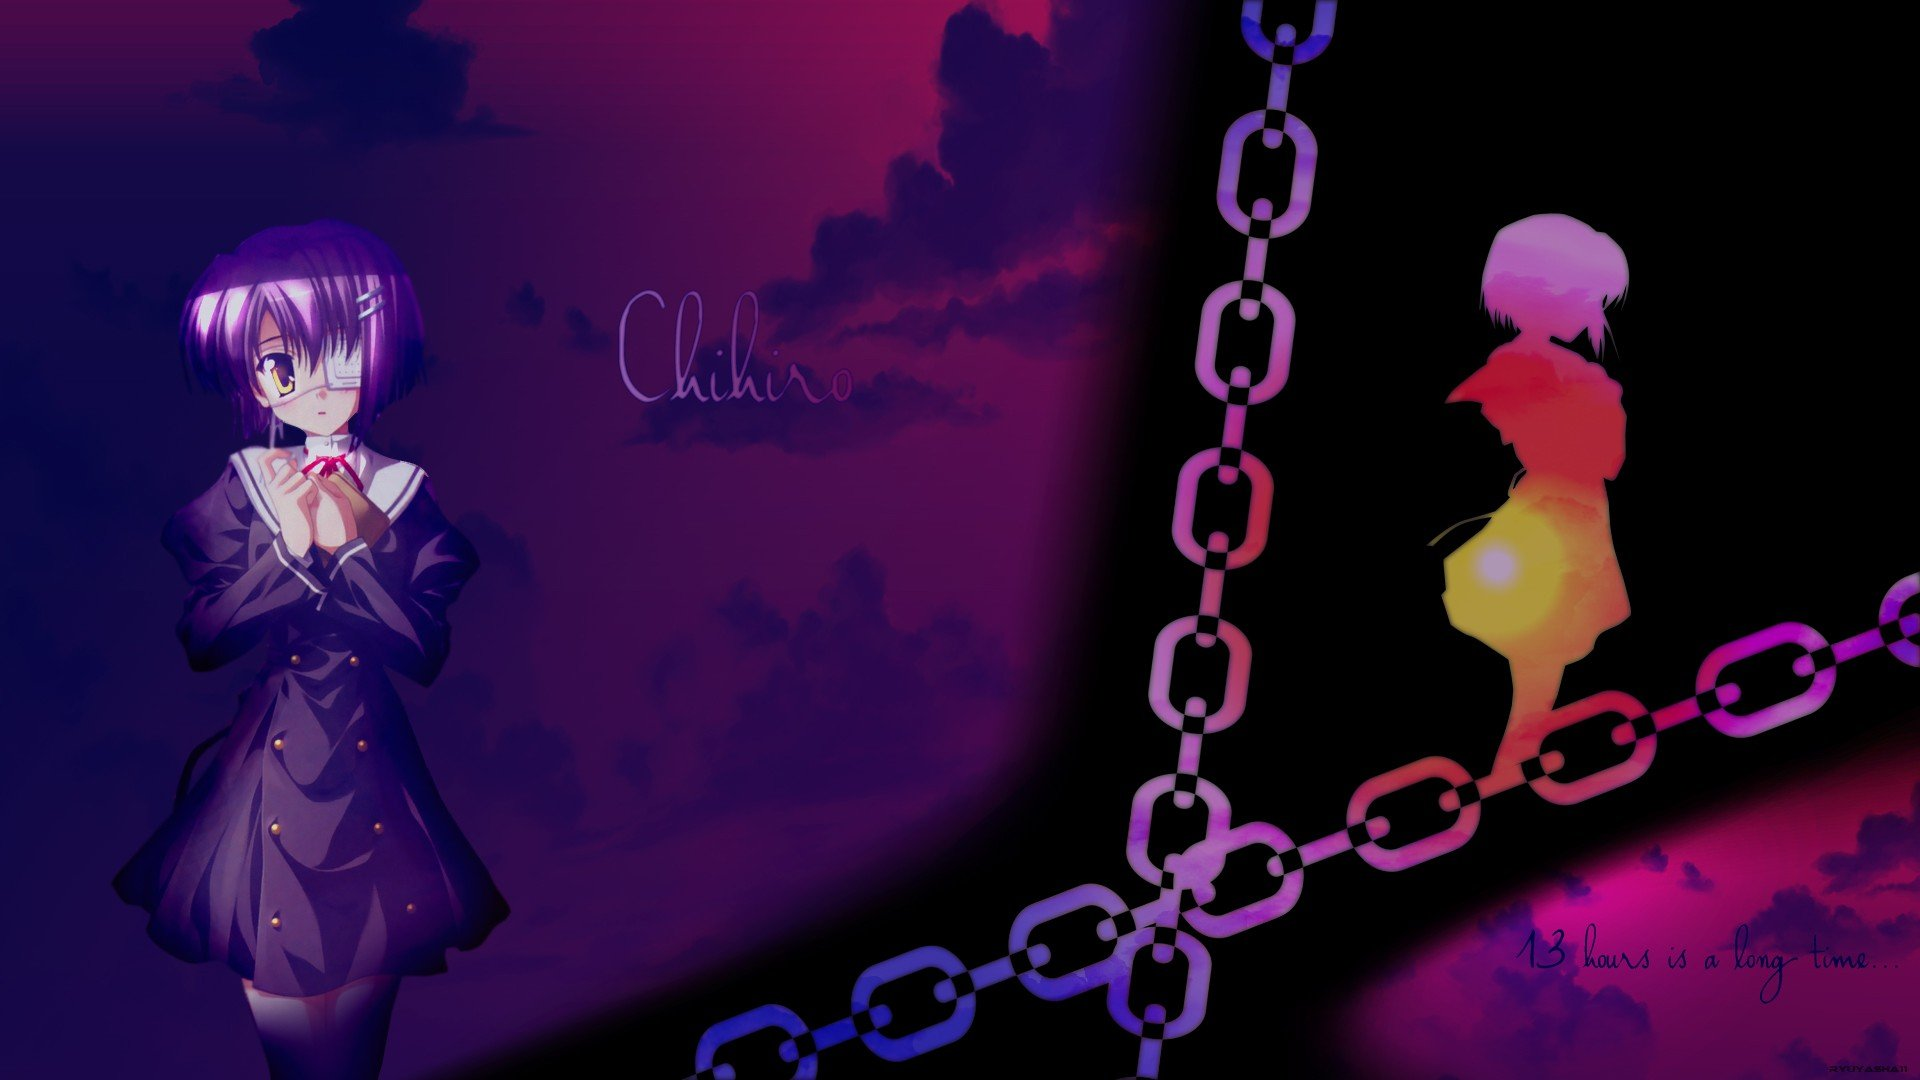 Ef A Tale Of Memories Anime Chihiro Shindo Wallpaper 1920x1080 260484 Wallpaperup